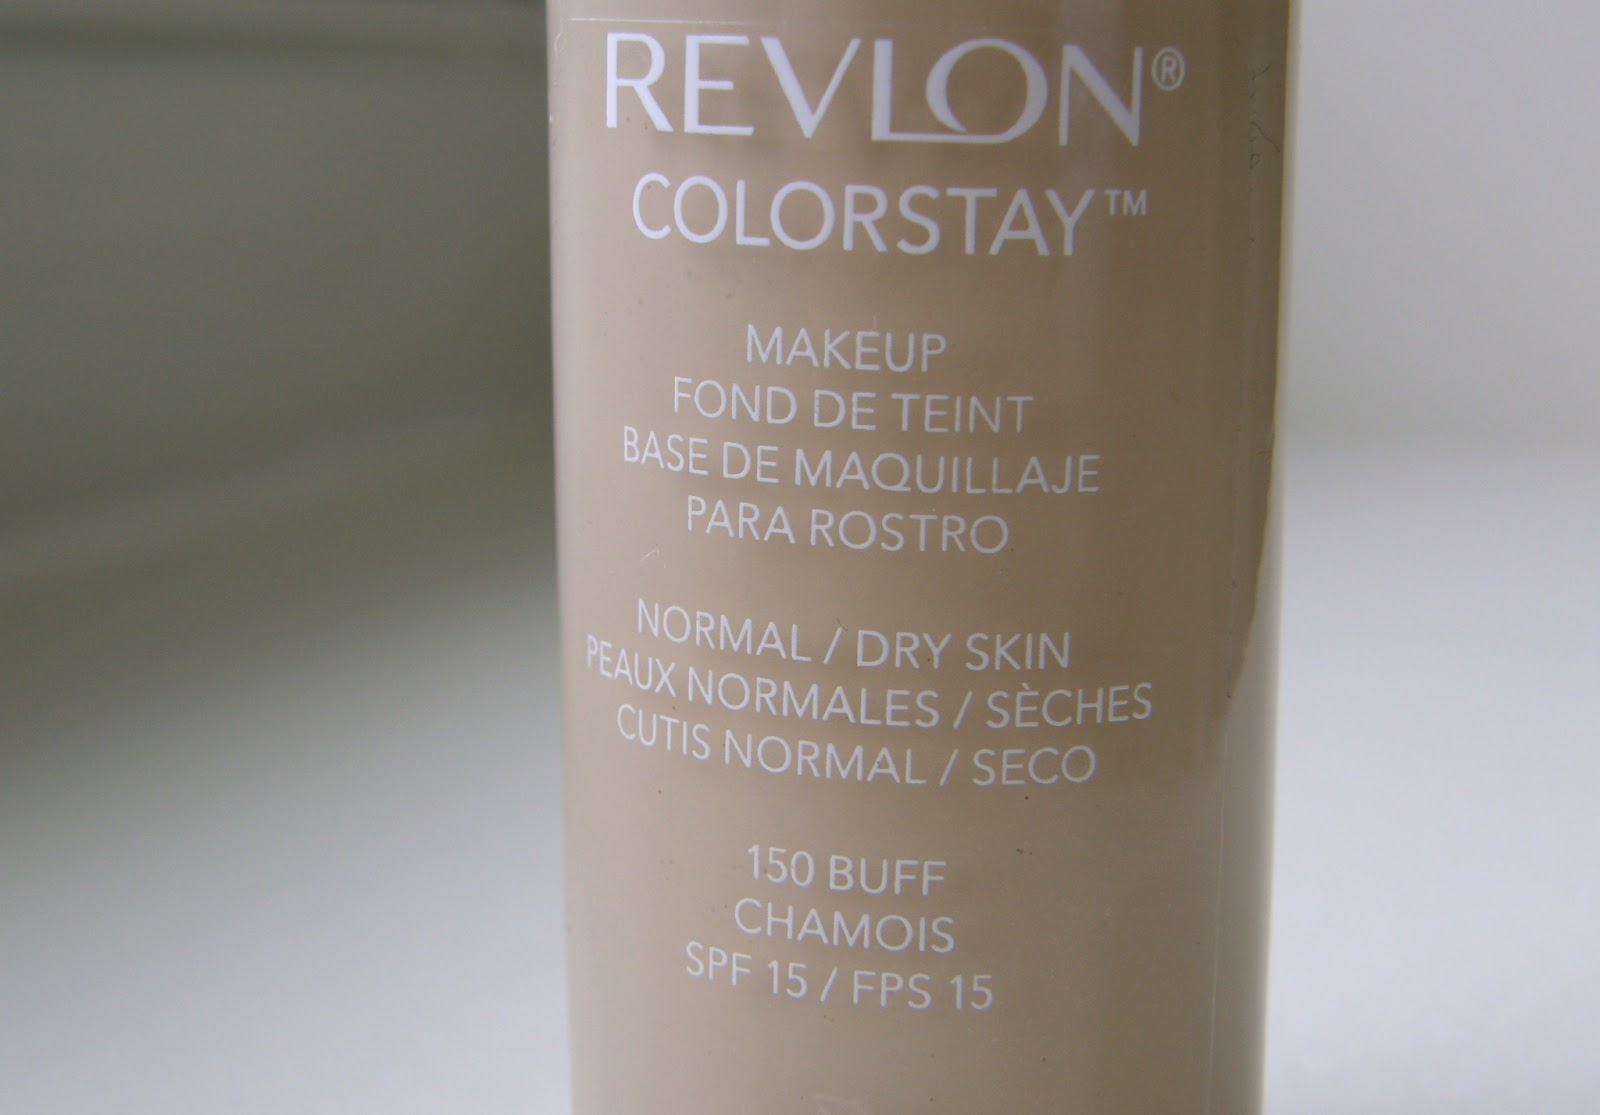 Thrift thick revlon colorstay foundation for normaldry skin revlon colorstay foundation for normaldry skin swatches review nvjuhfo Choice Image